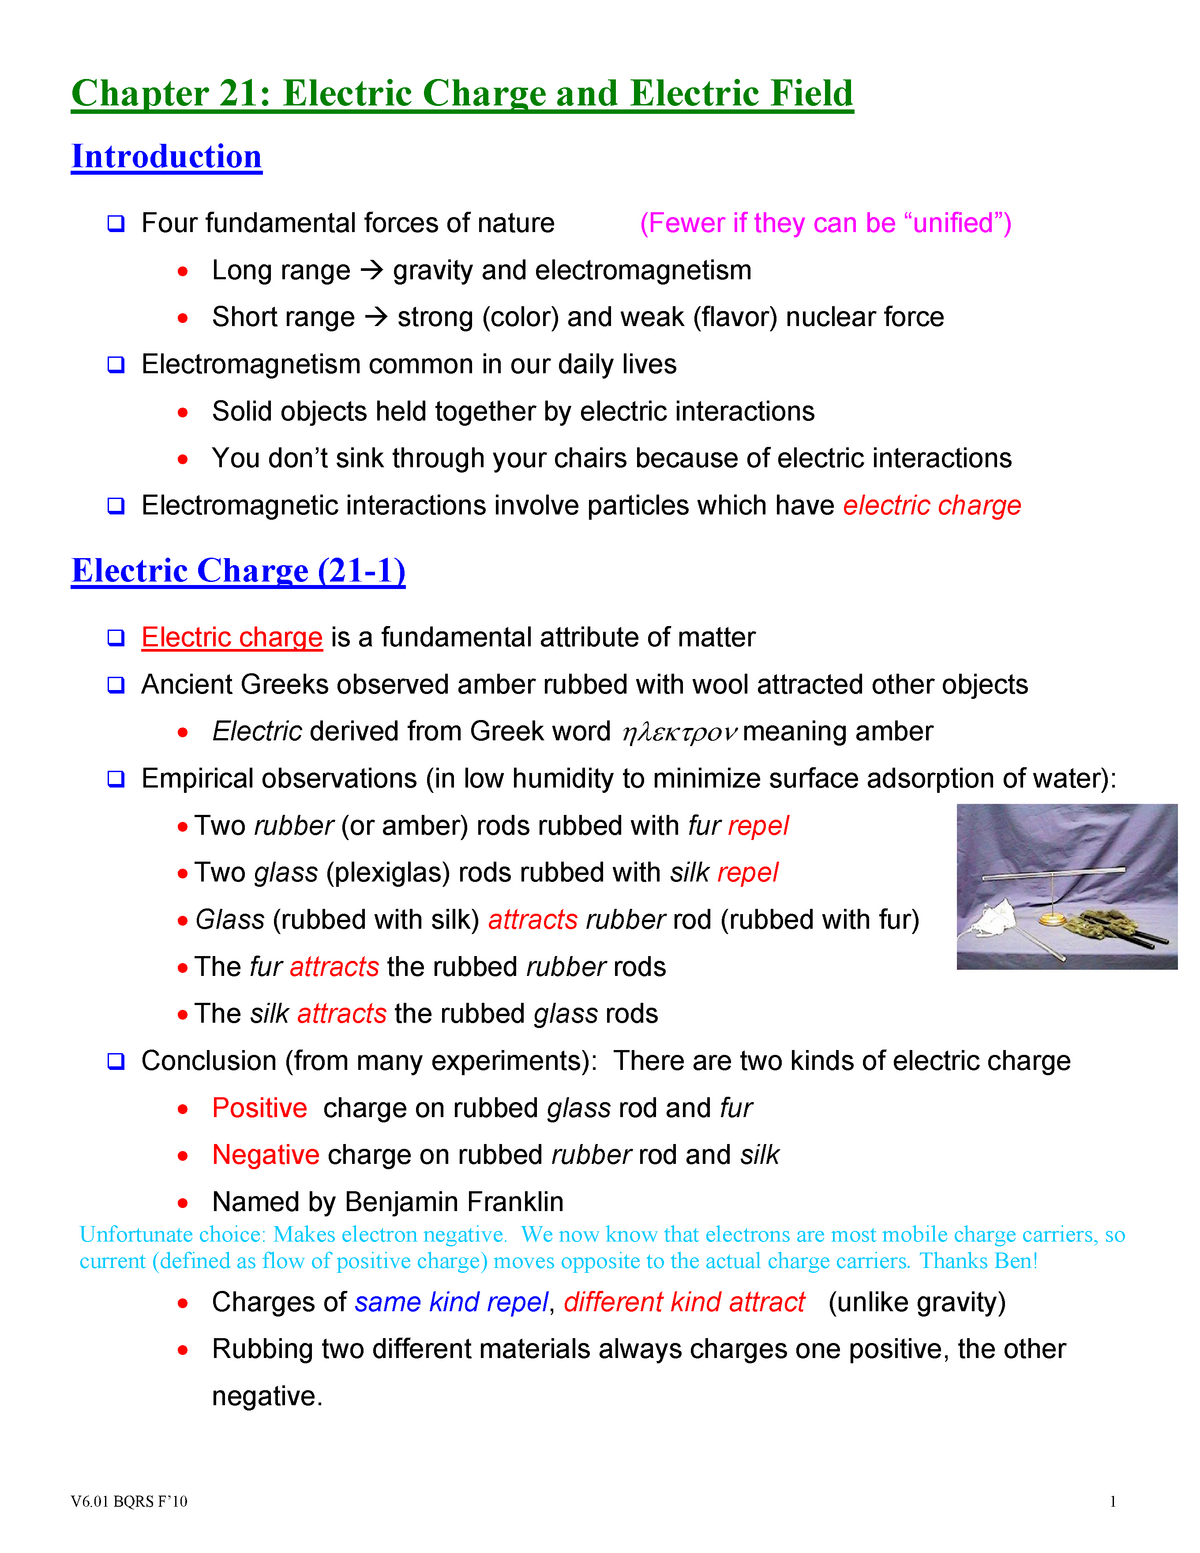 Lecture notes, Chapter 21: Electric Charge and Electric